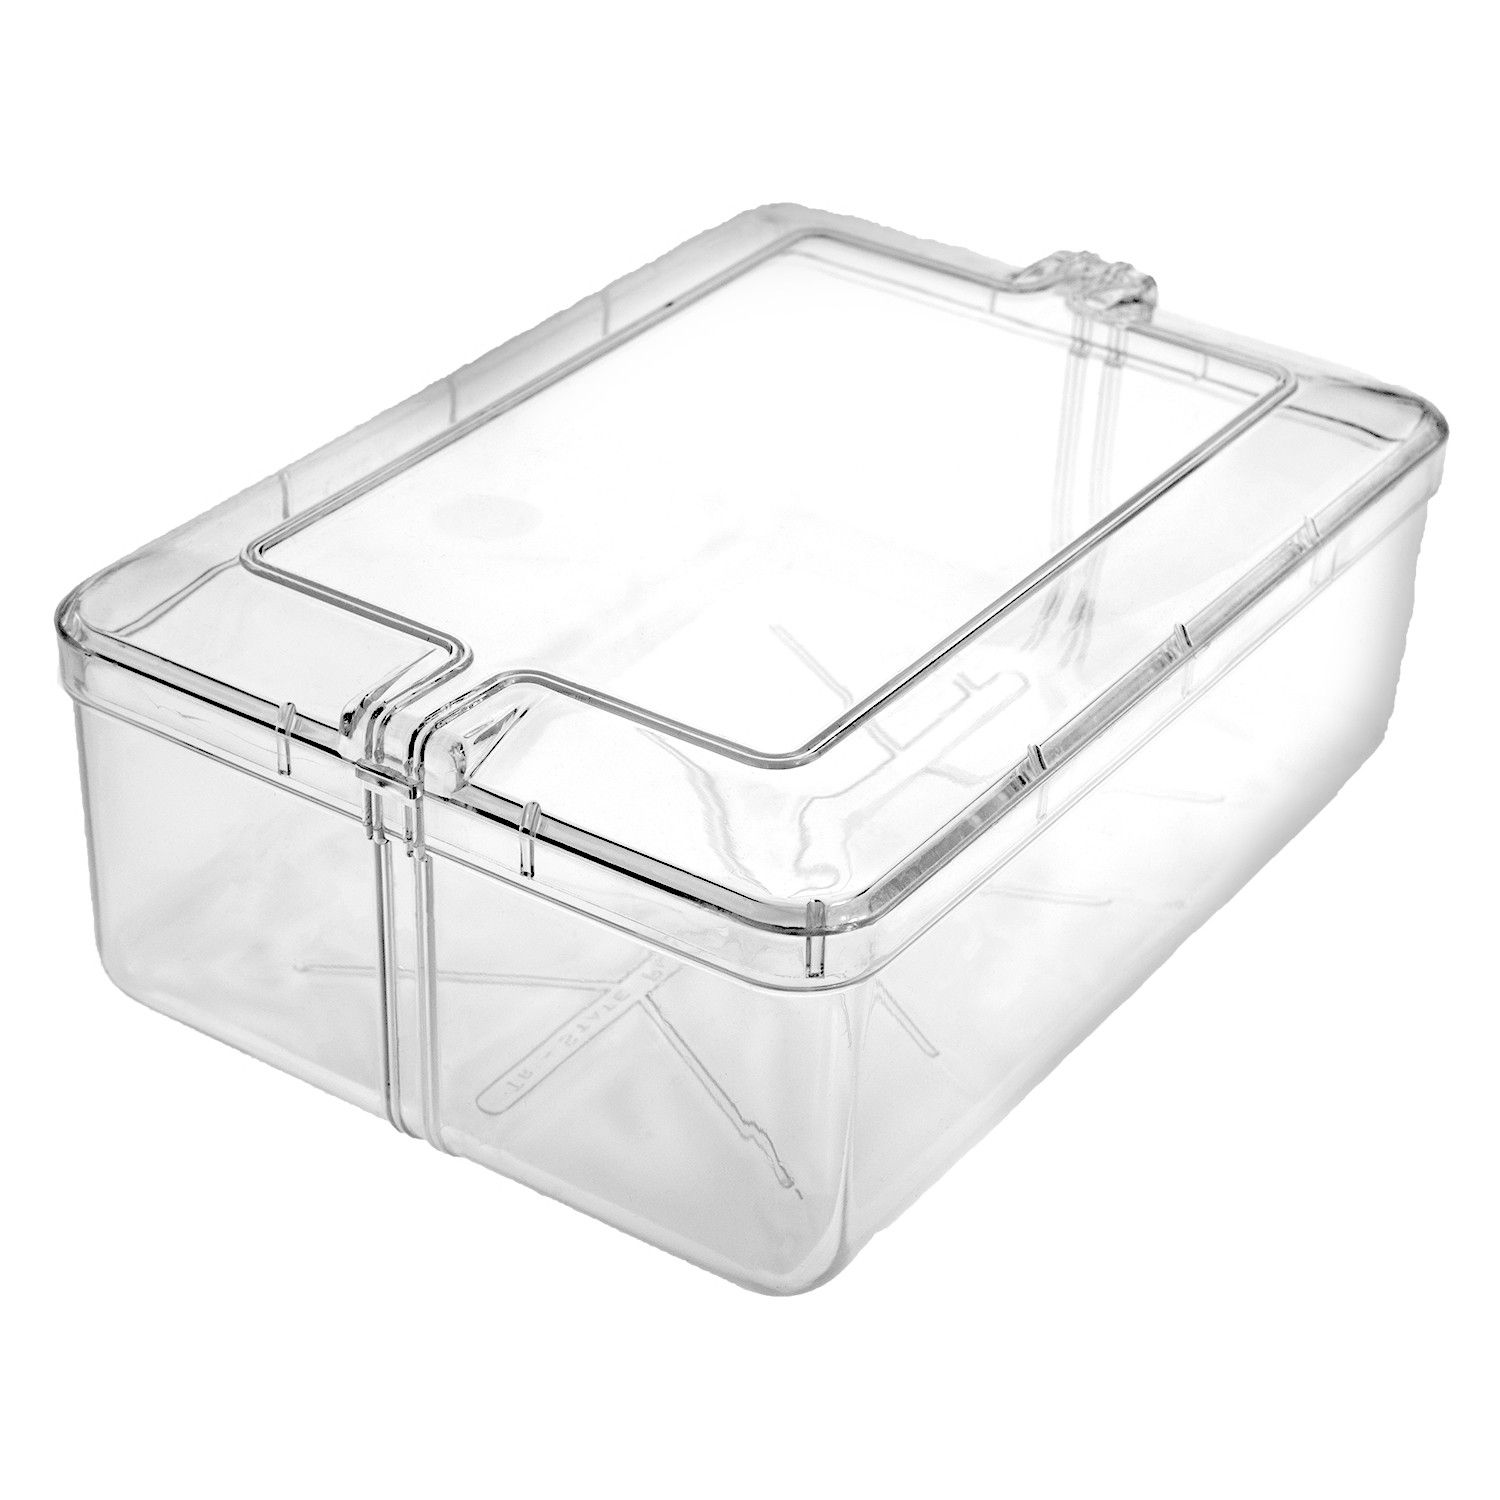 Rectangle Clear Plastic Box 42 Oz Storage Capacity 6 3 4 W X 2 3 8 H X 4 13 16 D Made Using High Quali Kitchen Food Storage High Quality Food Food Packaging